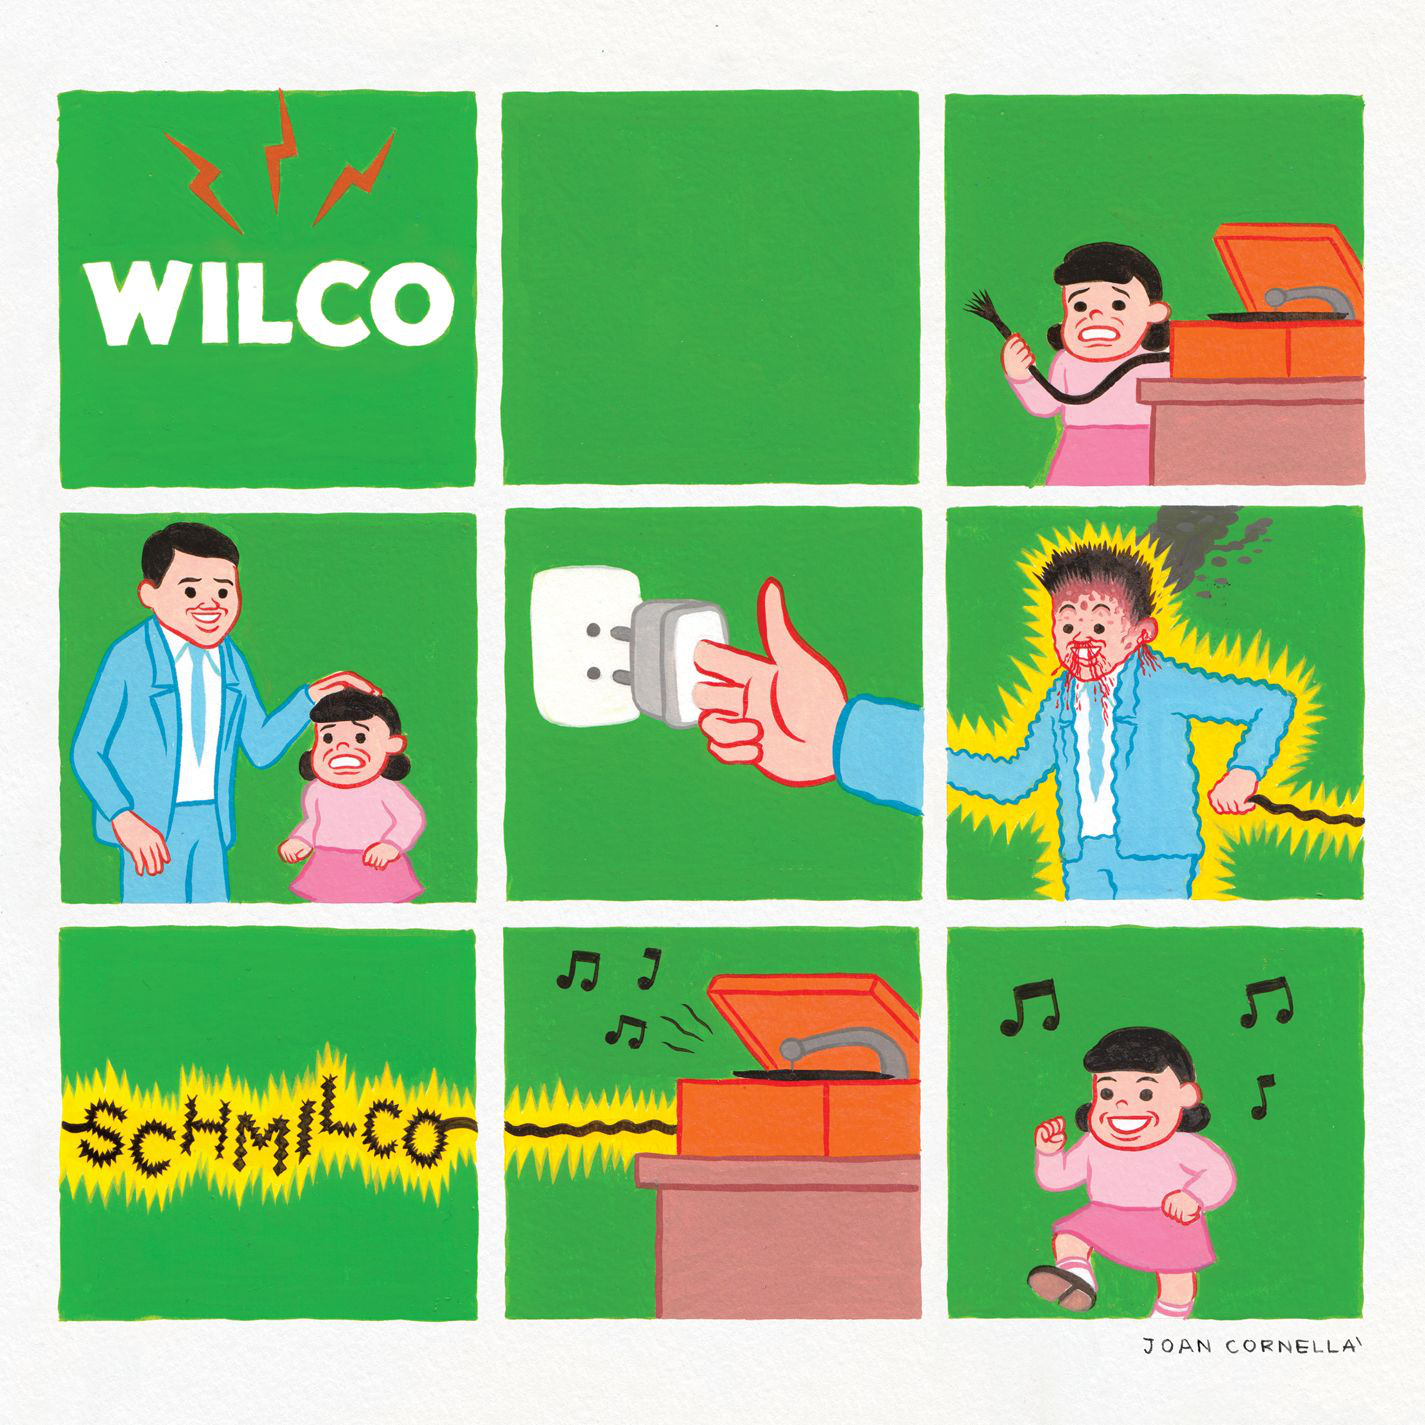 Schmilco  Wilco  Kevin: Buy It Carrie: Buy It Patrick: Buy It  LINKS  Official Site   Facebook   Twitter   Instagram   LISTEN ON  Spotify   Apple Music